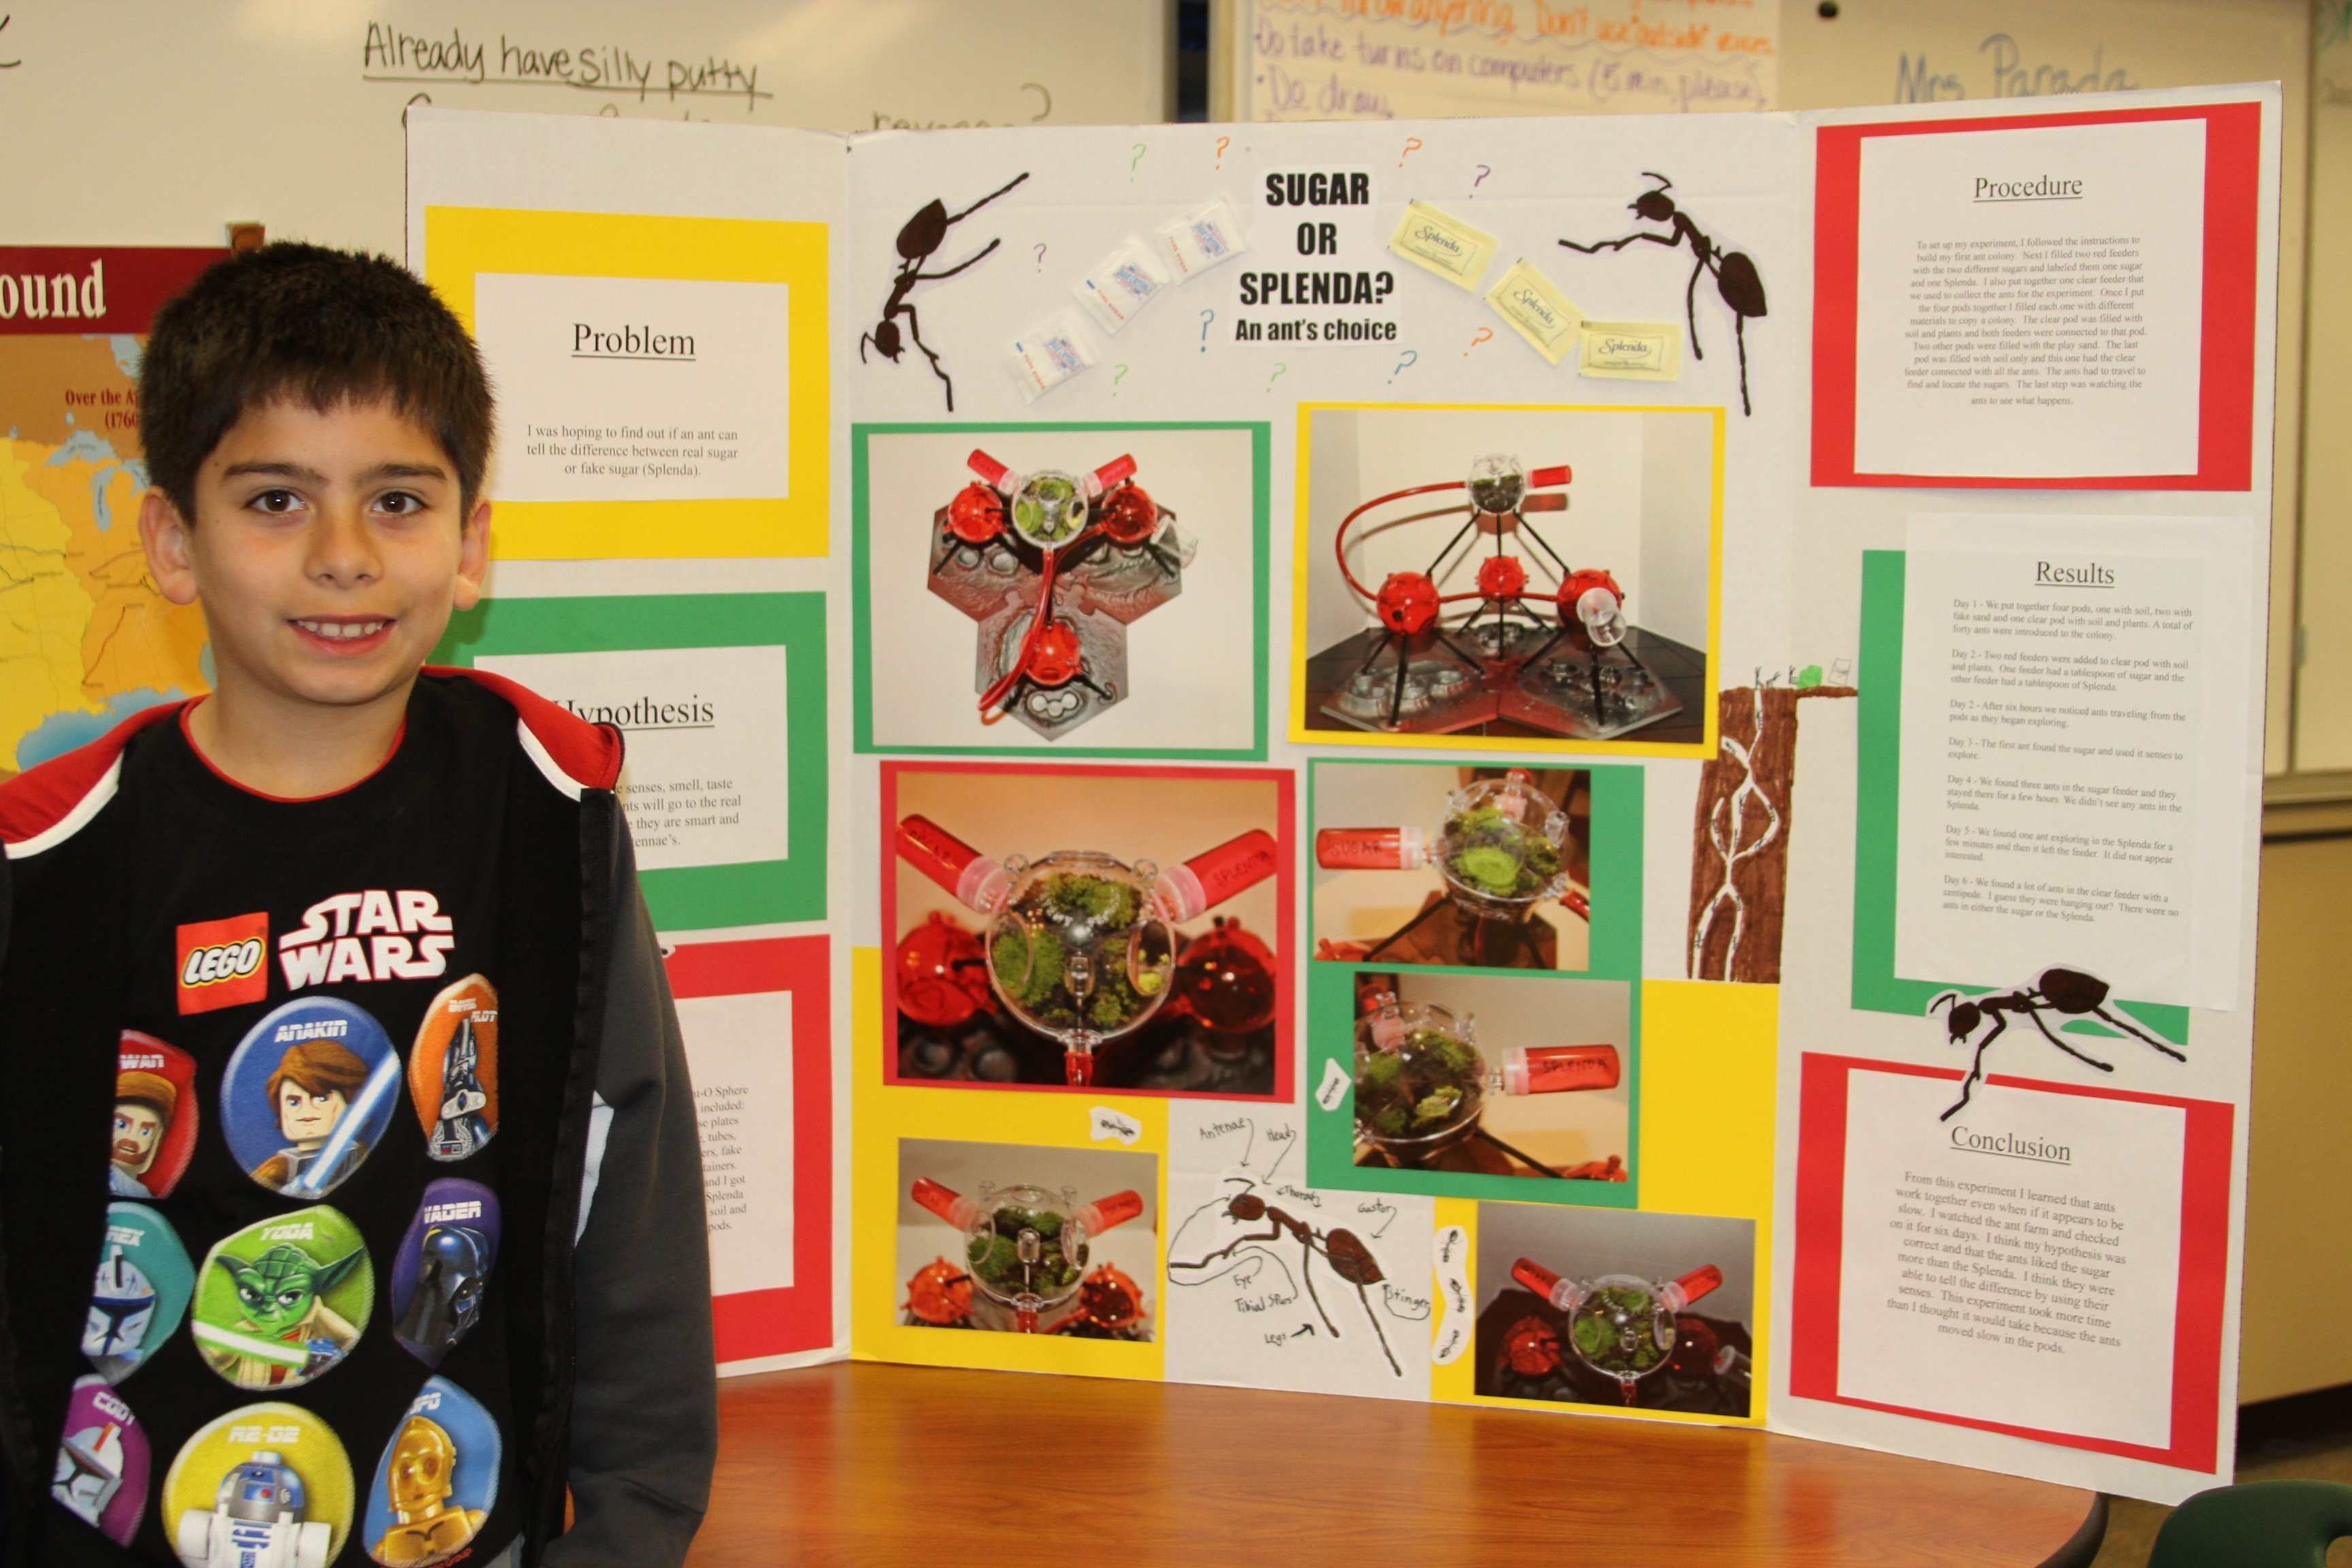 10 Fantastic Science Fair Project Ideas For 3Rd Graders green elementary school science fair inspires student scientists 1 2020